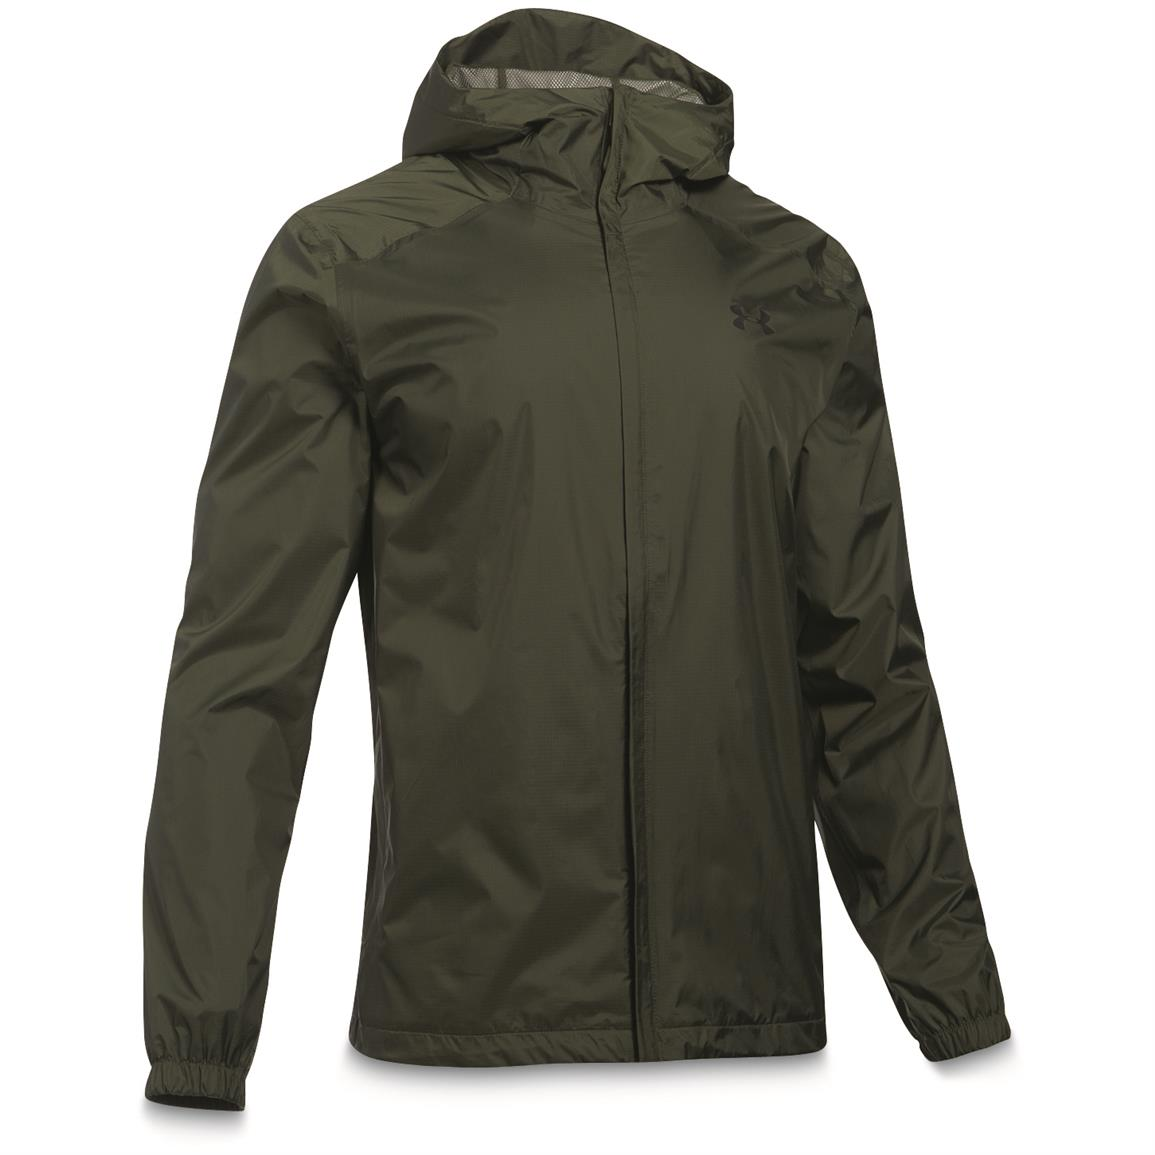 Under Armour Men's Waterproof / Windproof Bora Jacket, Downtown Green